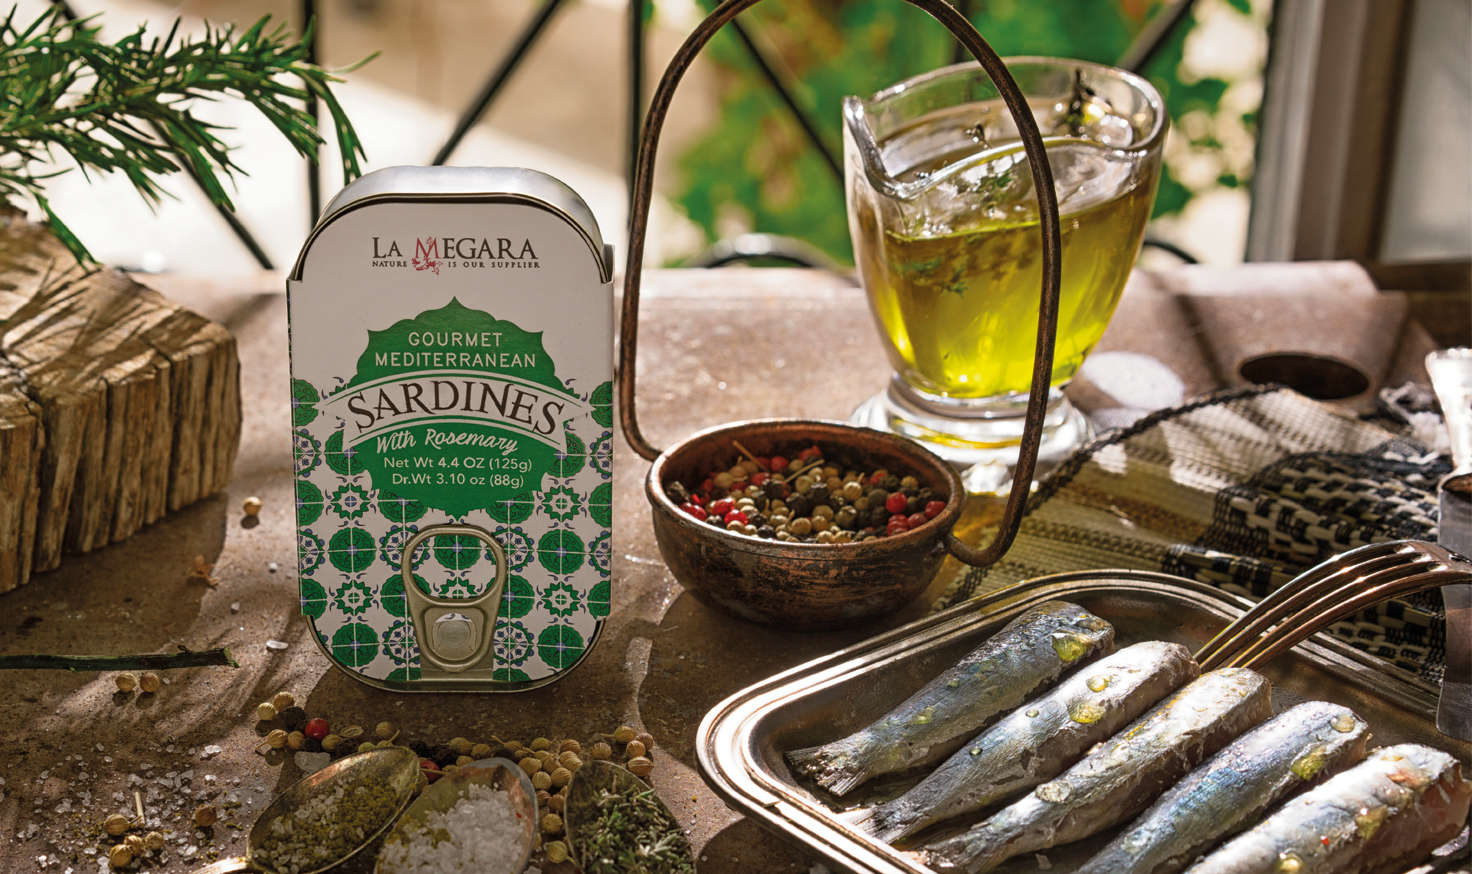 Gourmet  Mediterranean Sardines With Rosemary Background Image